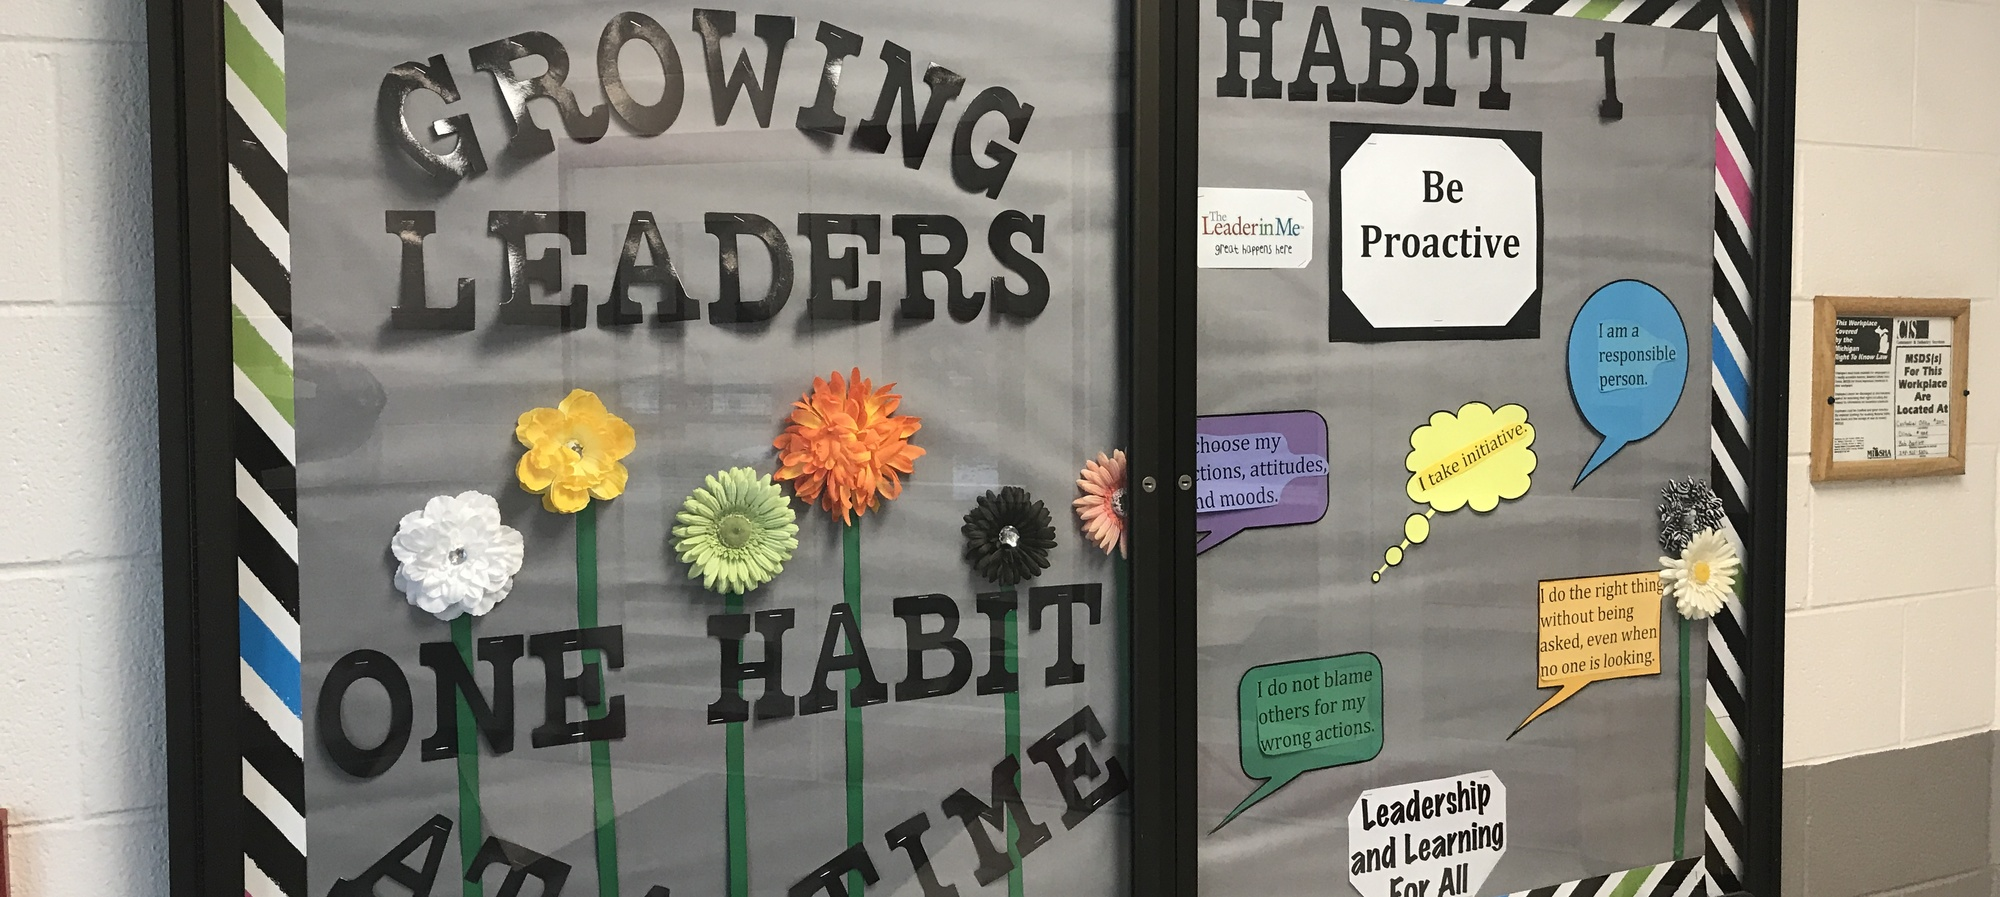 Habit 1 bulletin board